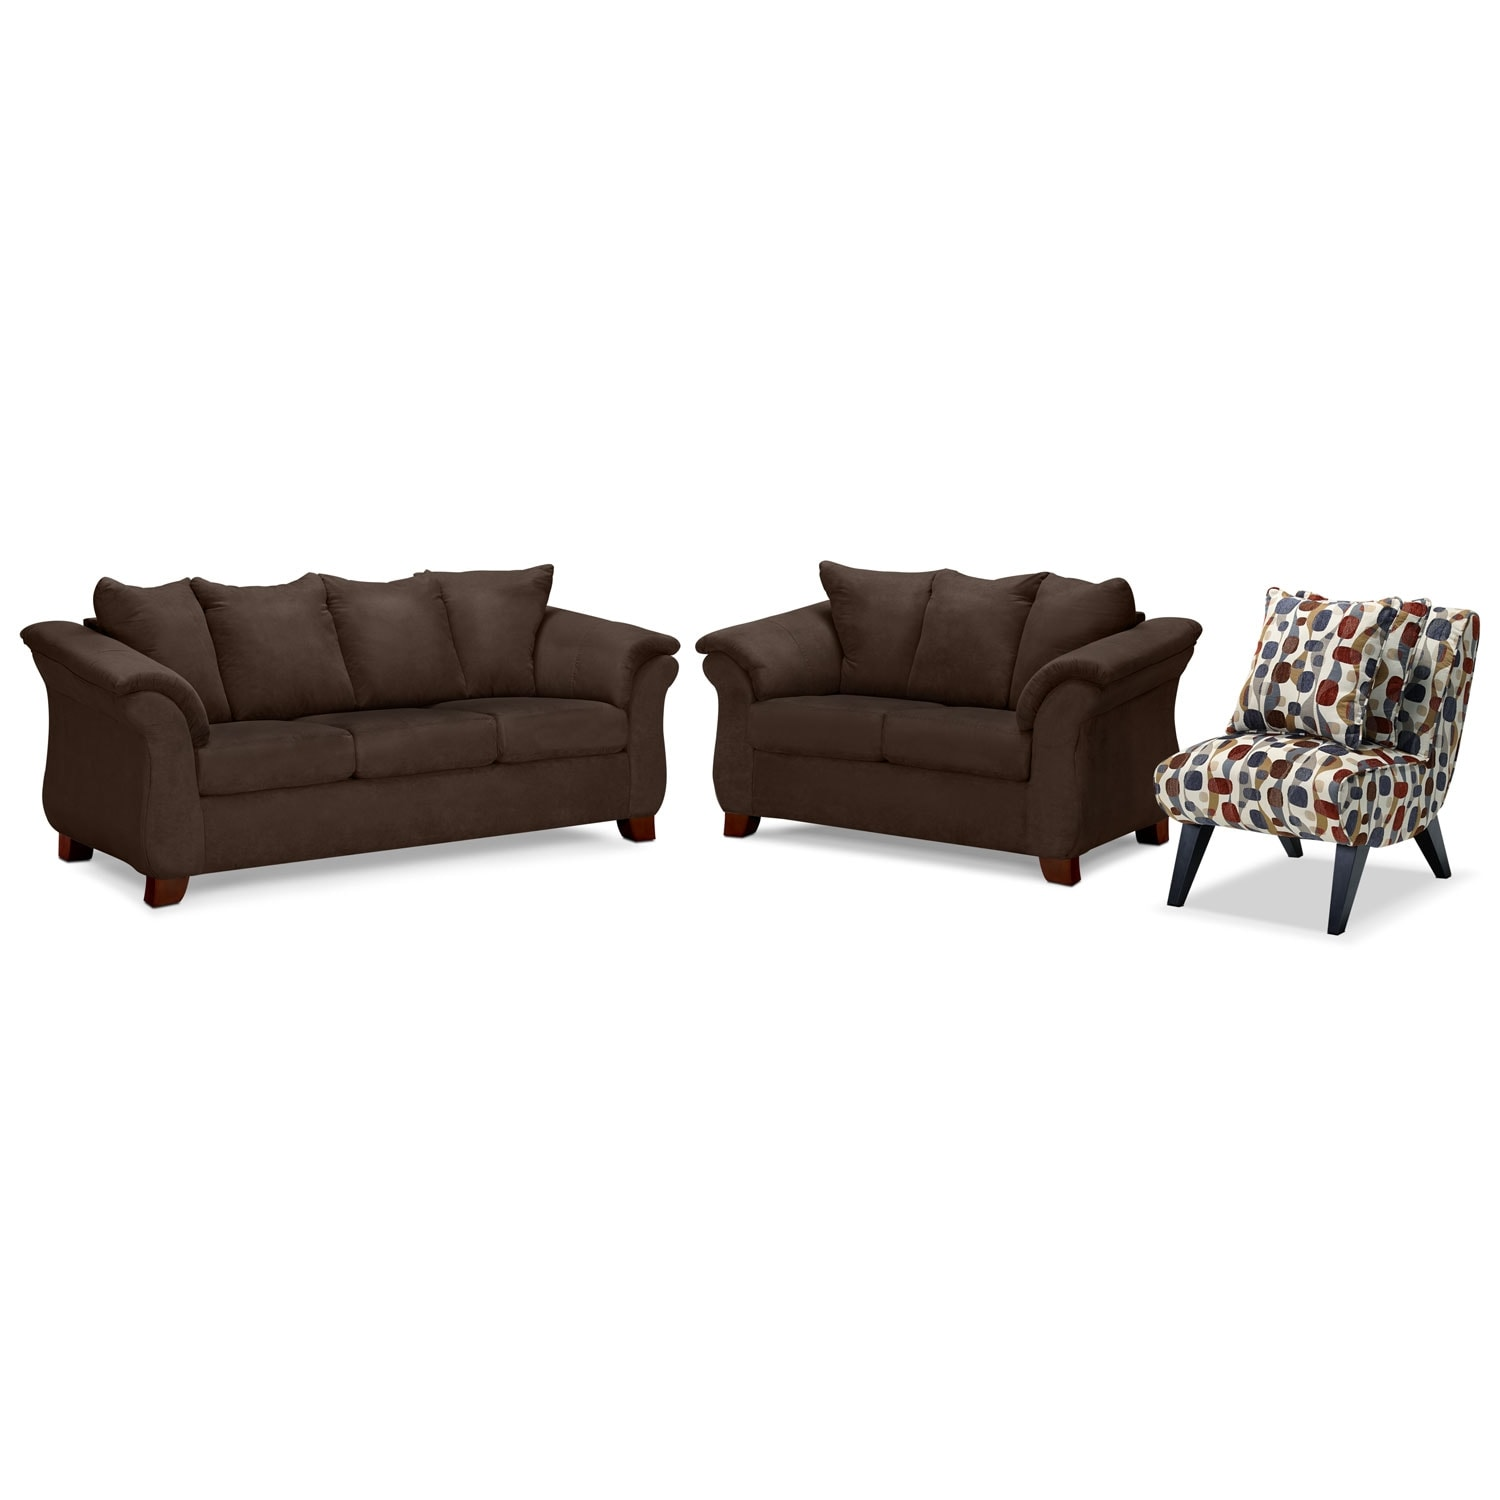 Adrian Sofa, Loveseat and Accent Chair Set - Chocolate